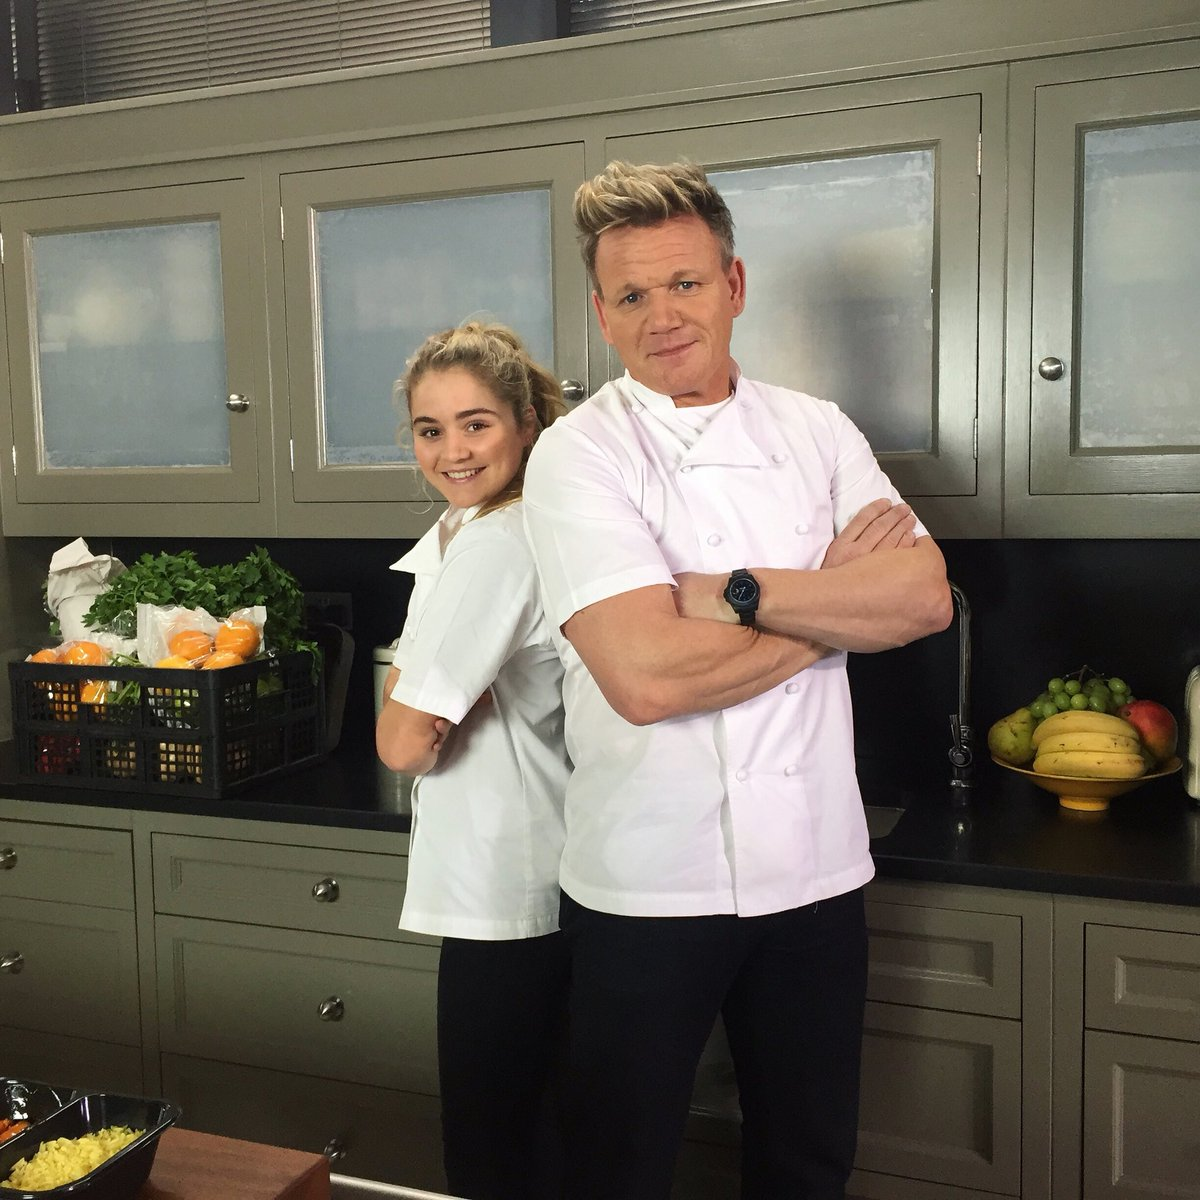 @GordonRamsay re: Tills...Its #fathersday so that means you better move it and start cooking my favourite dish for me ! Wishing all the dads out there a great Fathers Day Gx > What dish is that, Gordon? #MasterChef